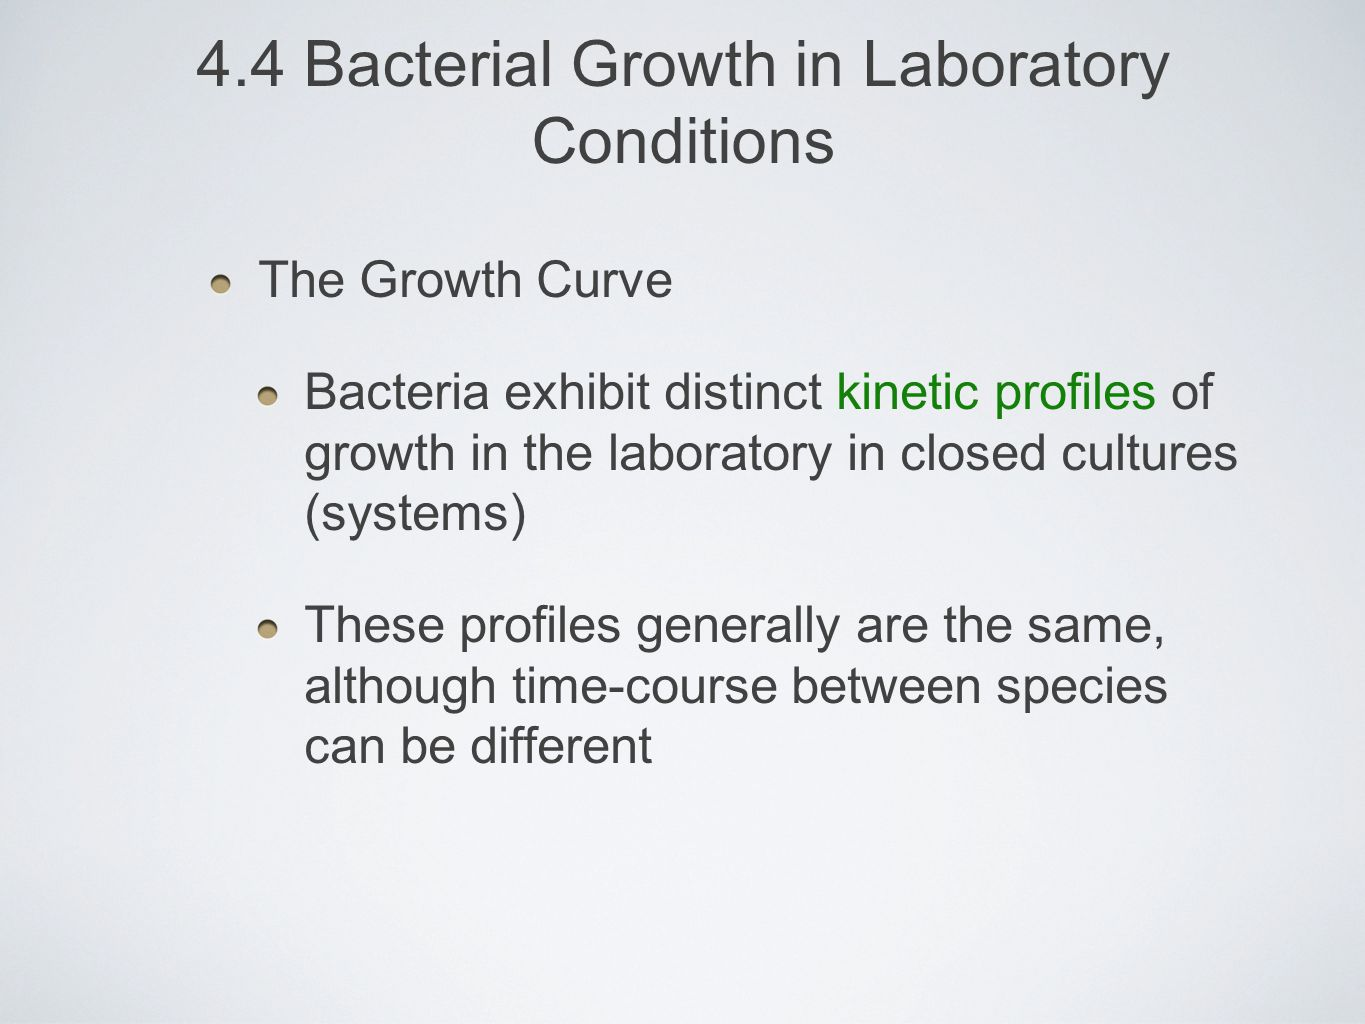 4.4 Bacterial Growth in Laboratory Conditions